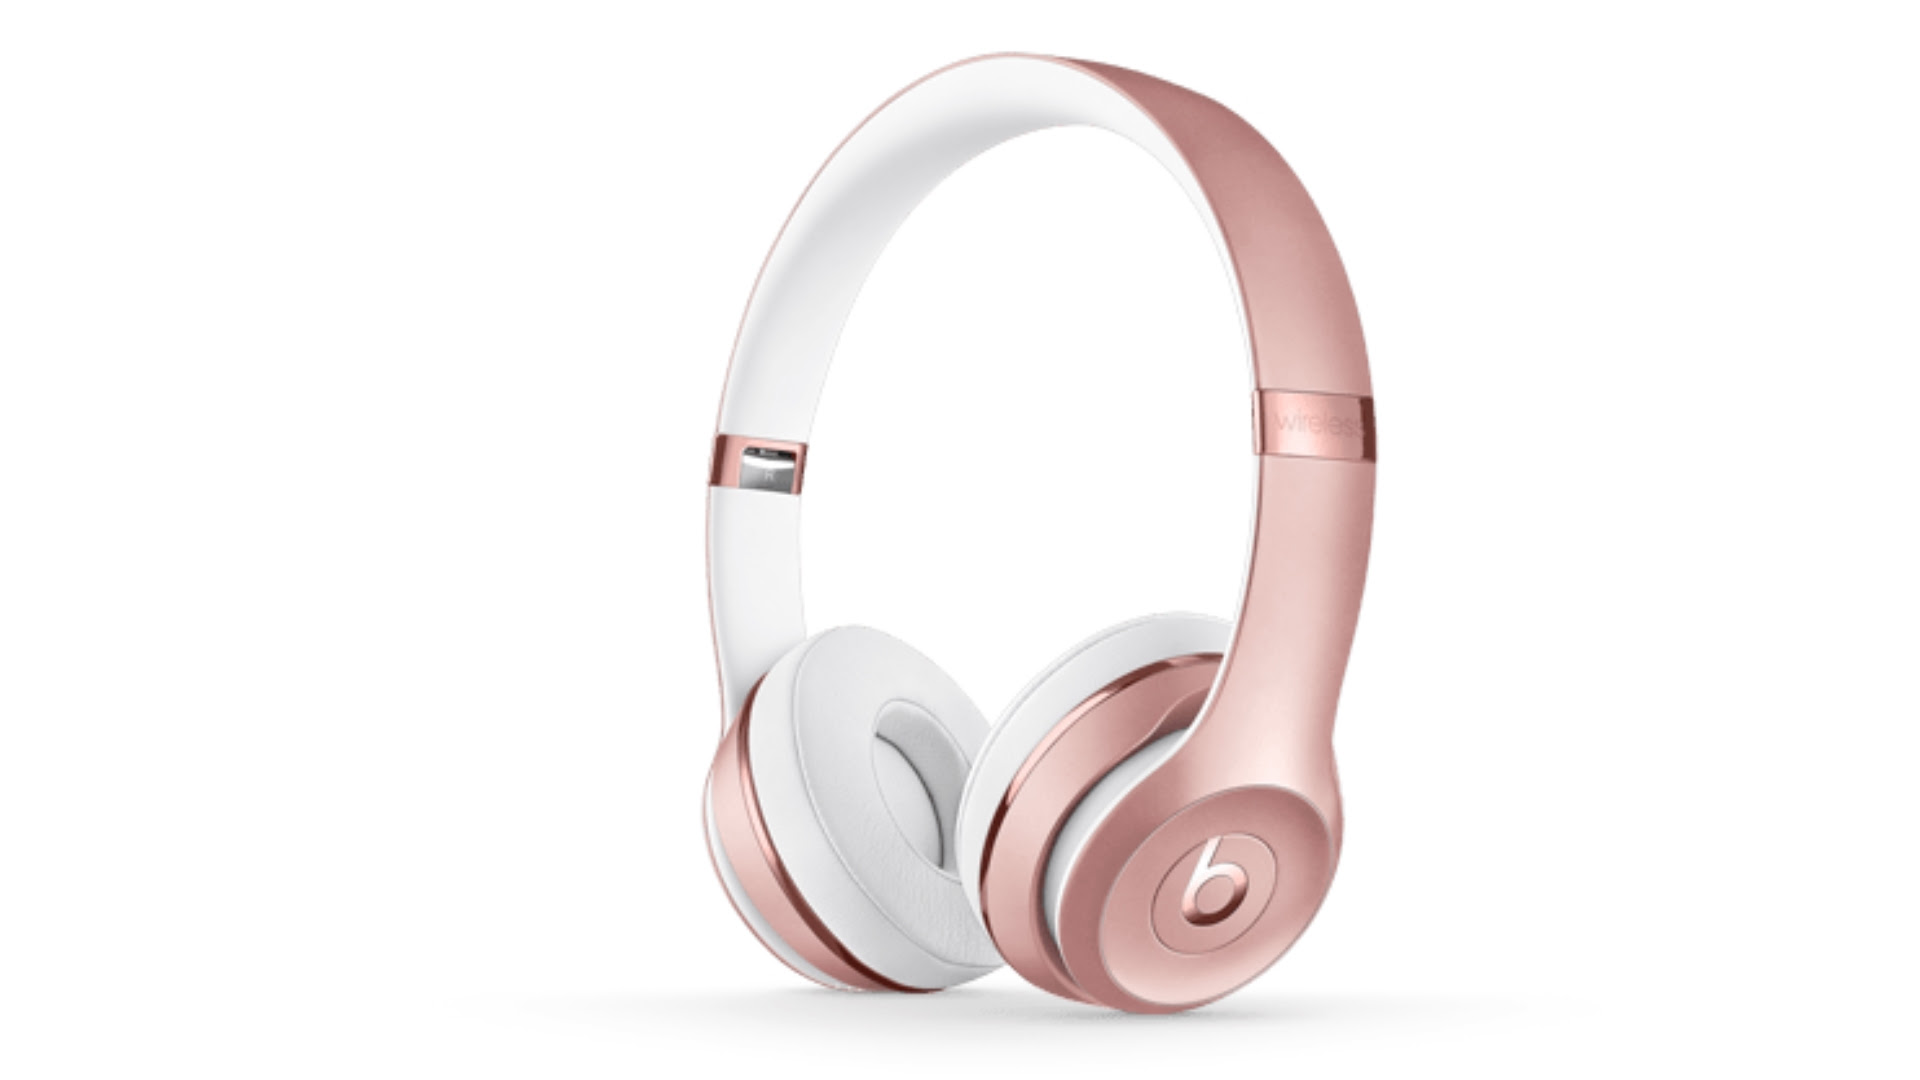 The Cheapest Beats Headphone Prices Sales And Deals For Cyber Monday 2018 Daily News